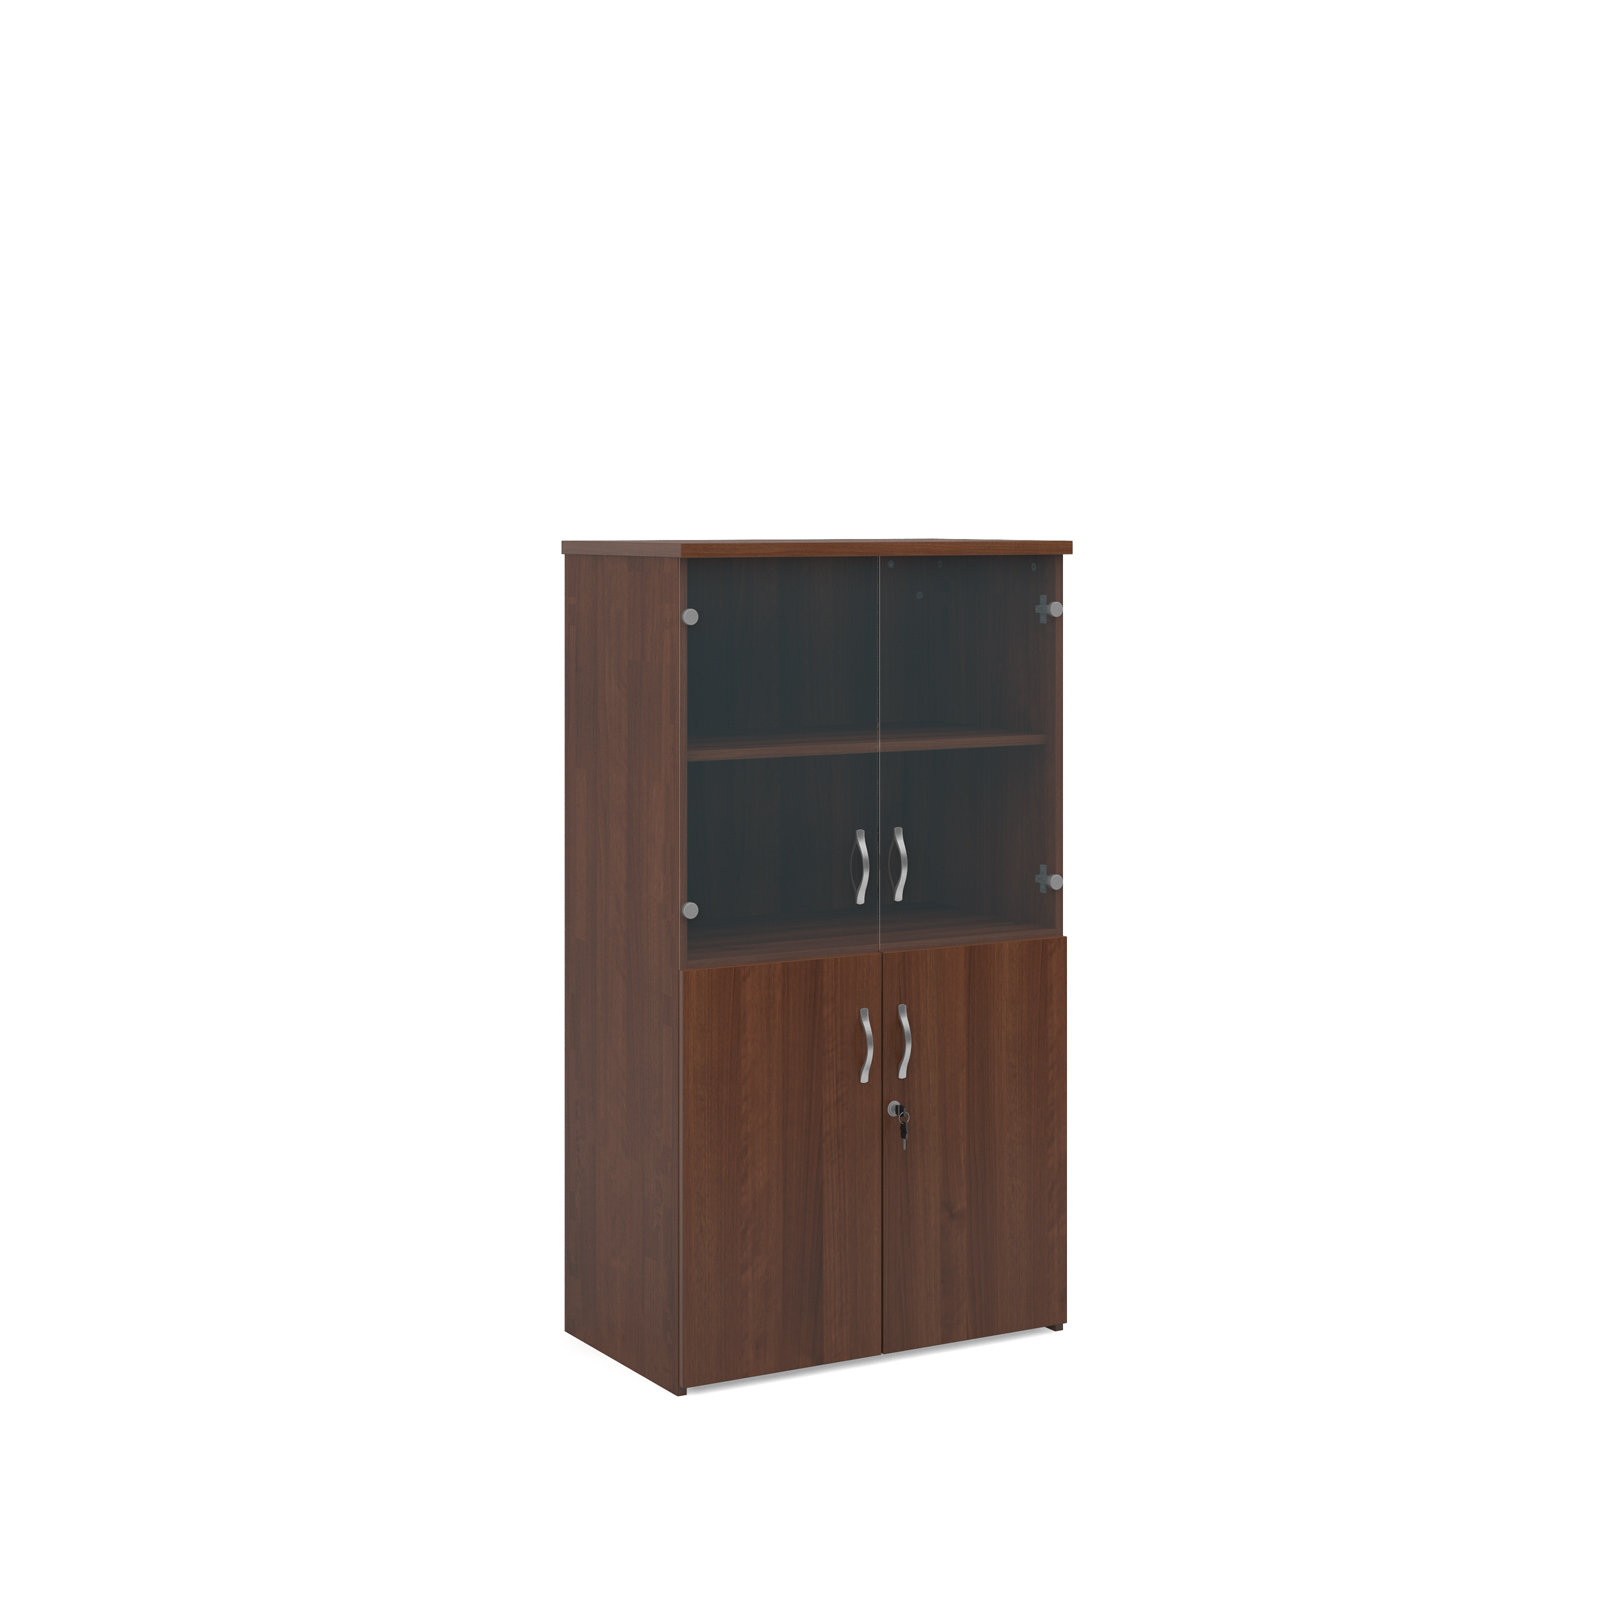 1440mm high combination unit with glass and wood doors in walnut